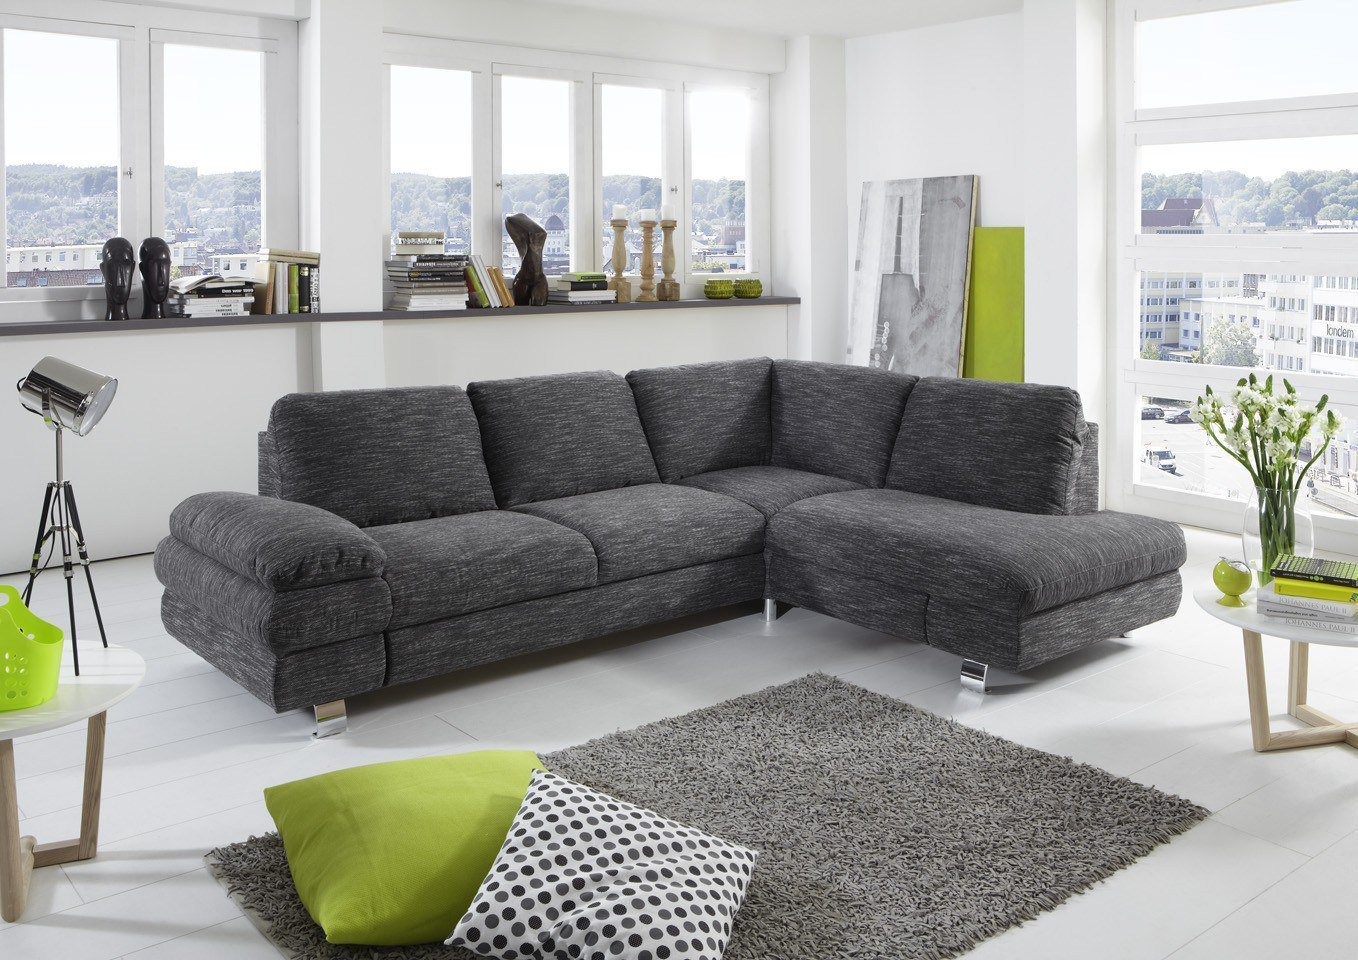 new look m bel manhattan ecksofa in grau m bel letz ihr online shop. Black Bedroom Furniture Sets. Home Design Ideas